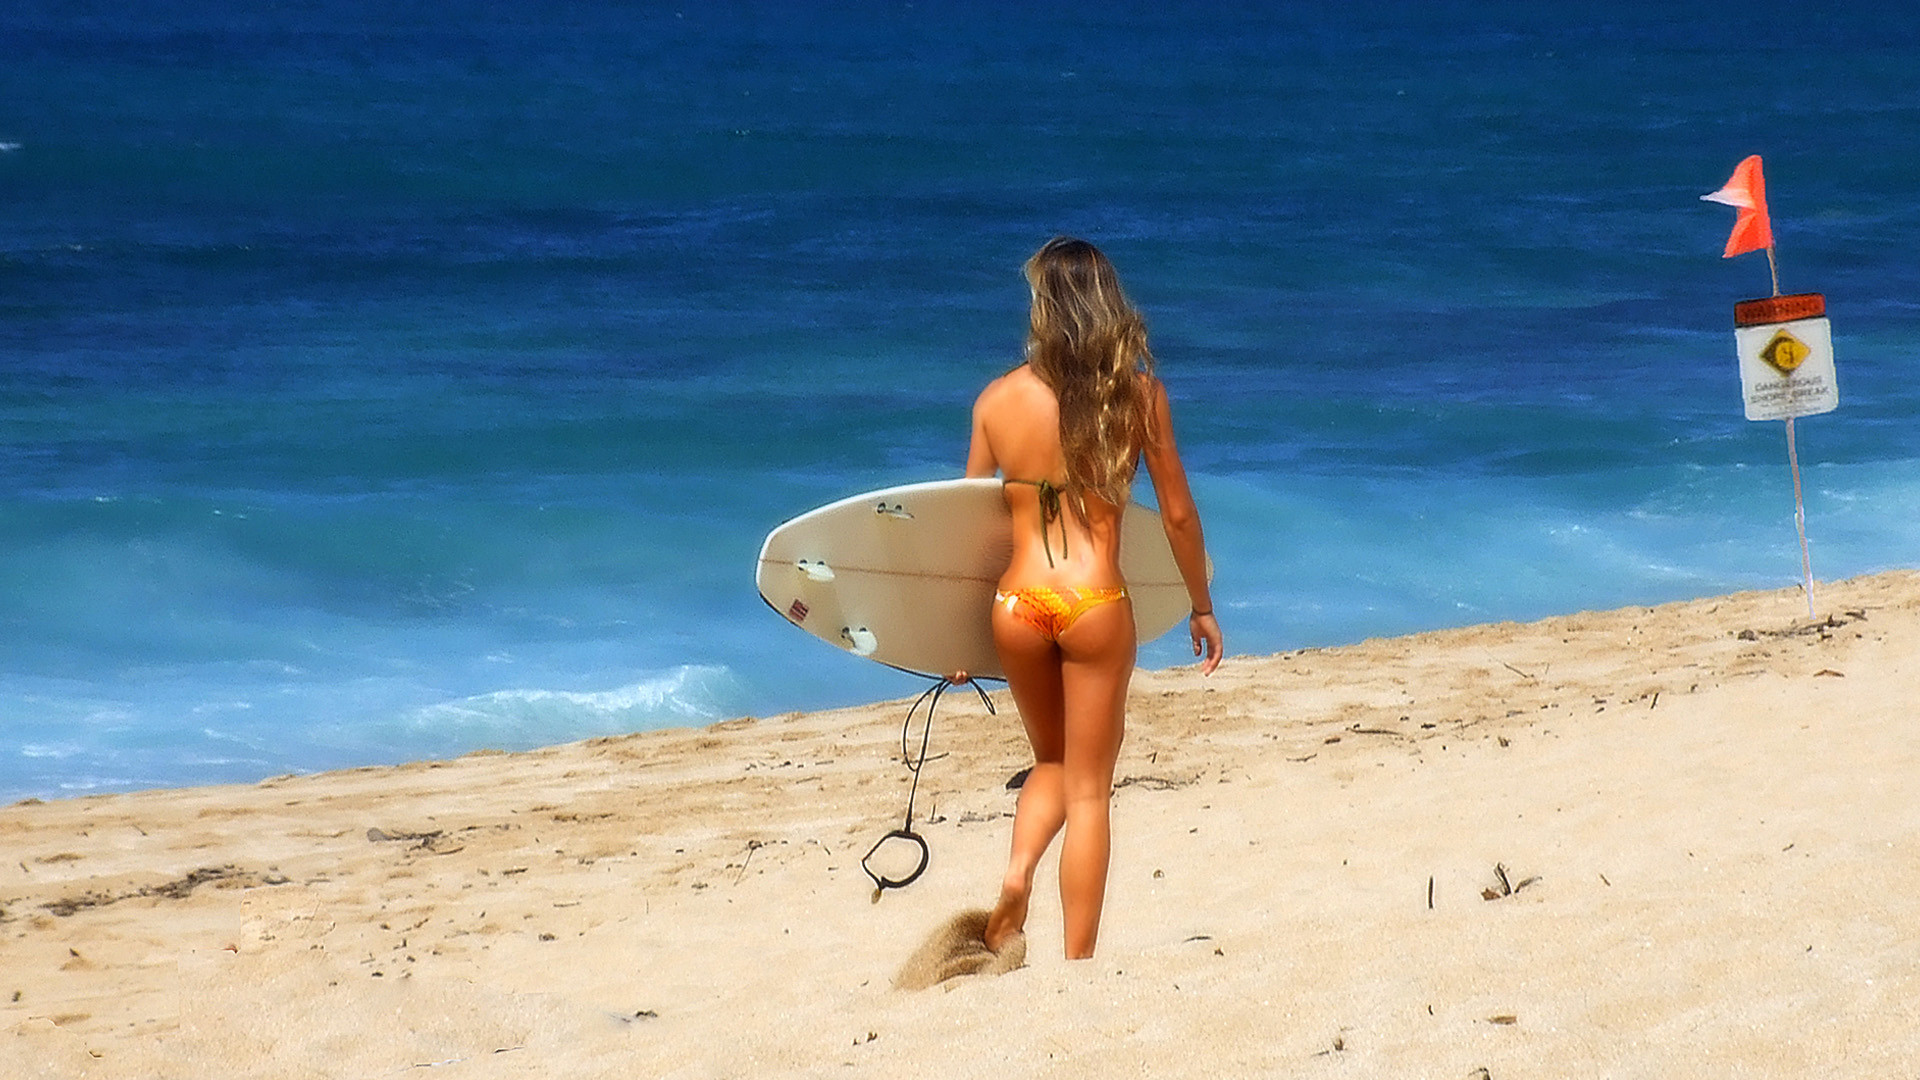 Res: 1920x1080, Surfer girl on the beach